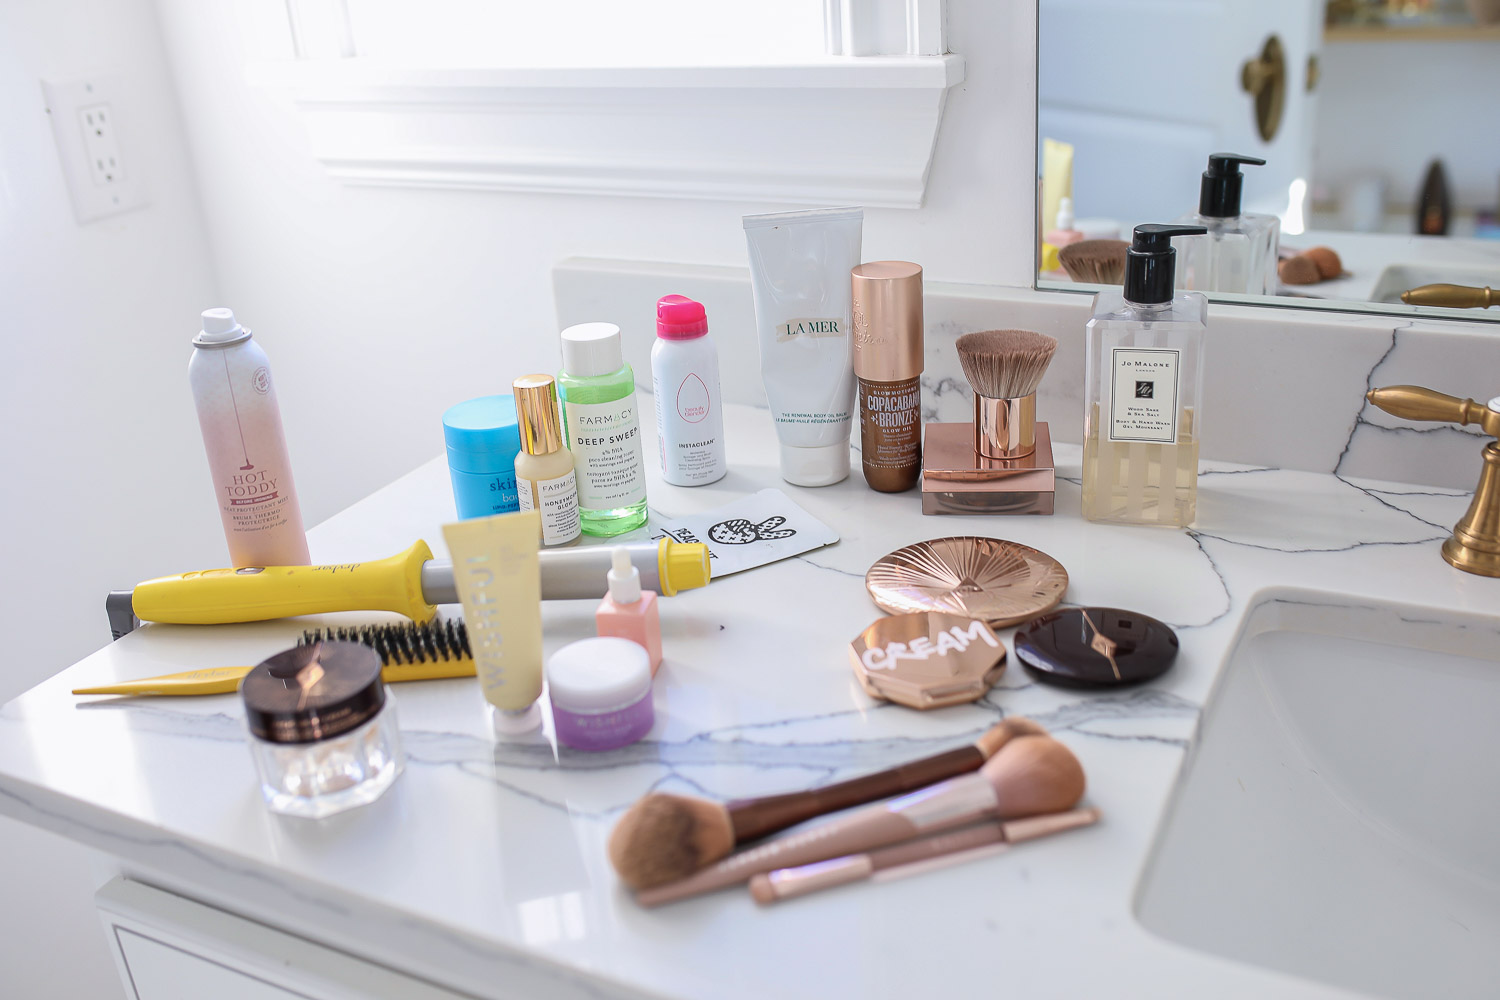 Sephora savings event fall 2020, beauty blogger sephora favorites fall 2020, emily ann gemma |Sephora Beauty Insider Sale by popular US beauty blog, The Sweetest Thing: image of Sephora beauty products products on a bathroom vanity counter.